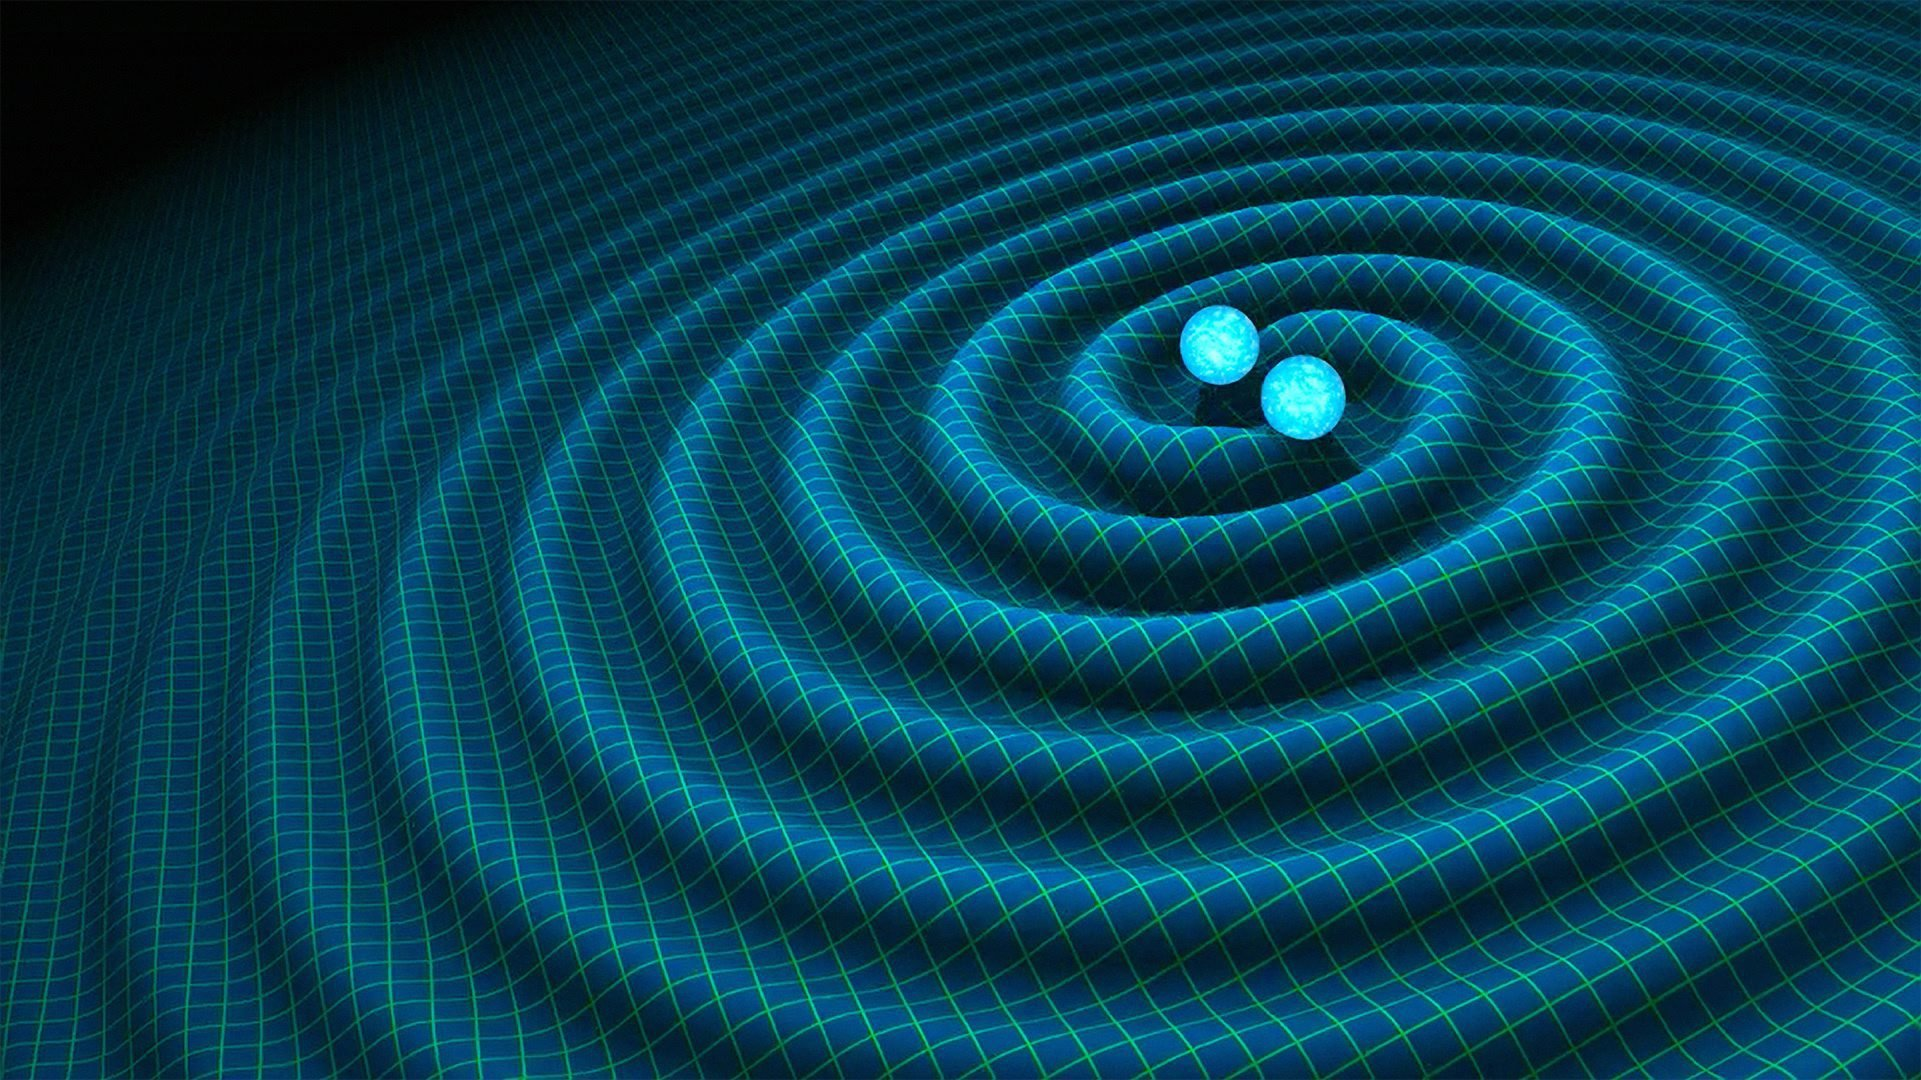 Gravitational Waves: A Long Hunt to Prove Einstein's Theory   Time